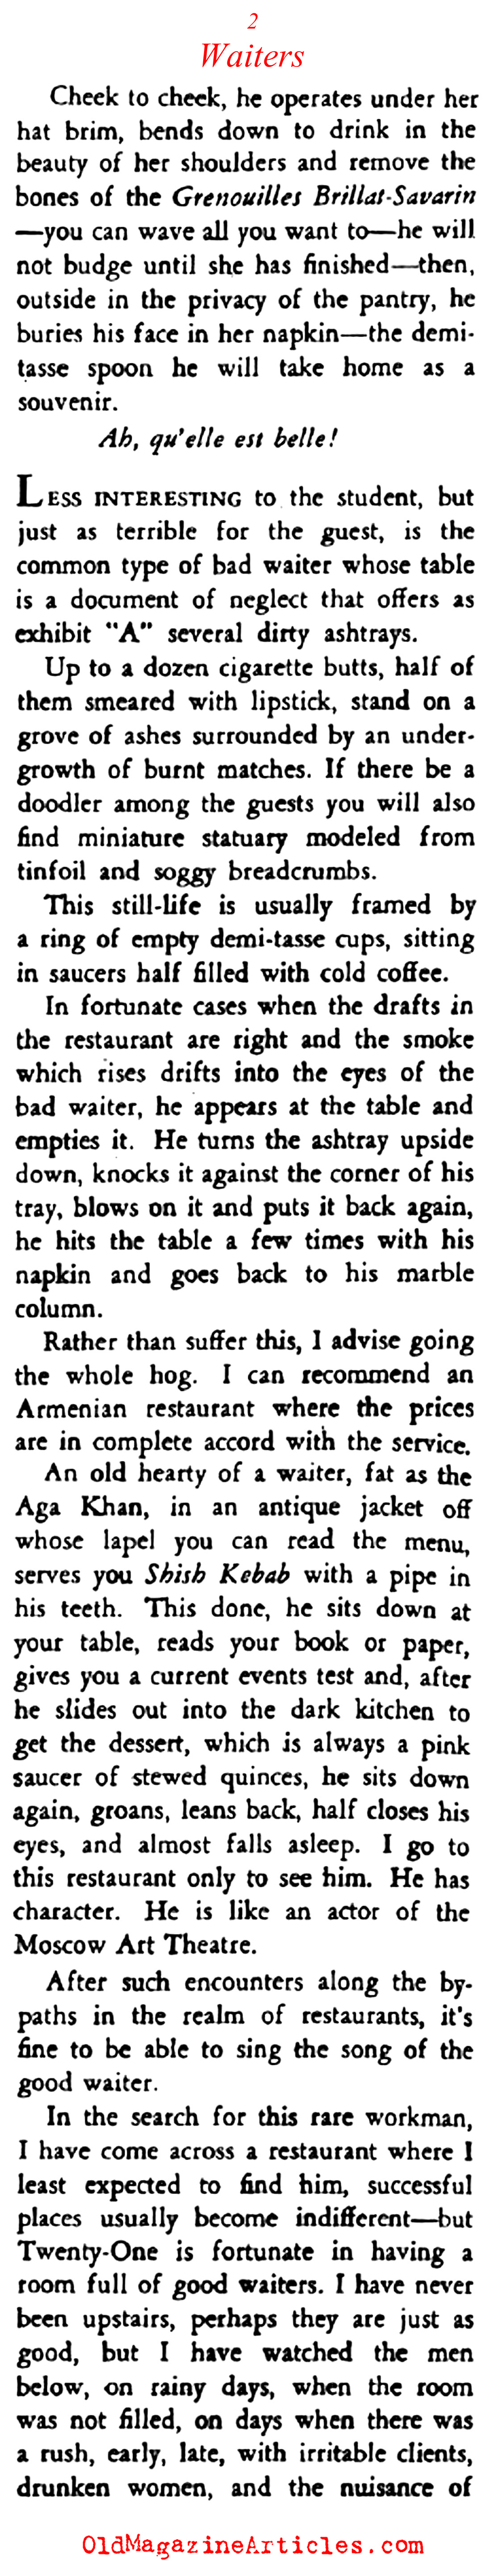 A Word on New York Waiters (Stage Magazine, 1939)